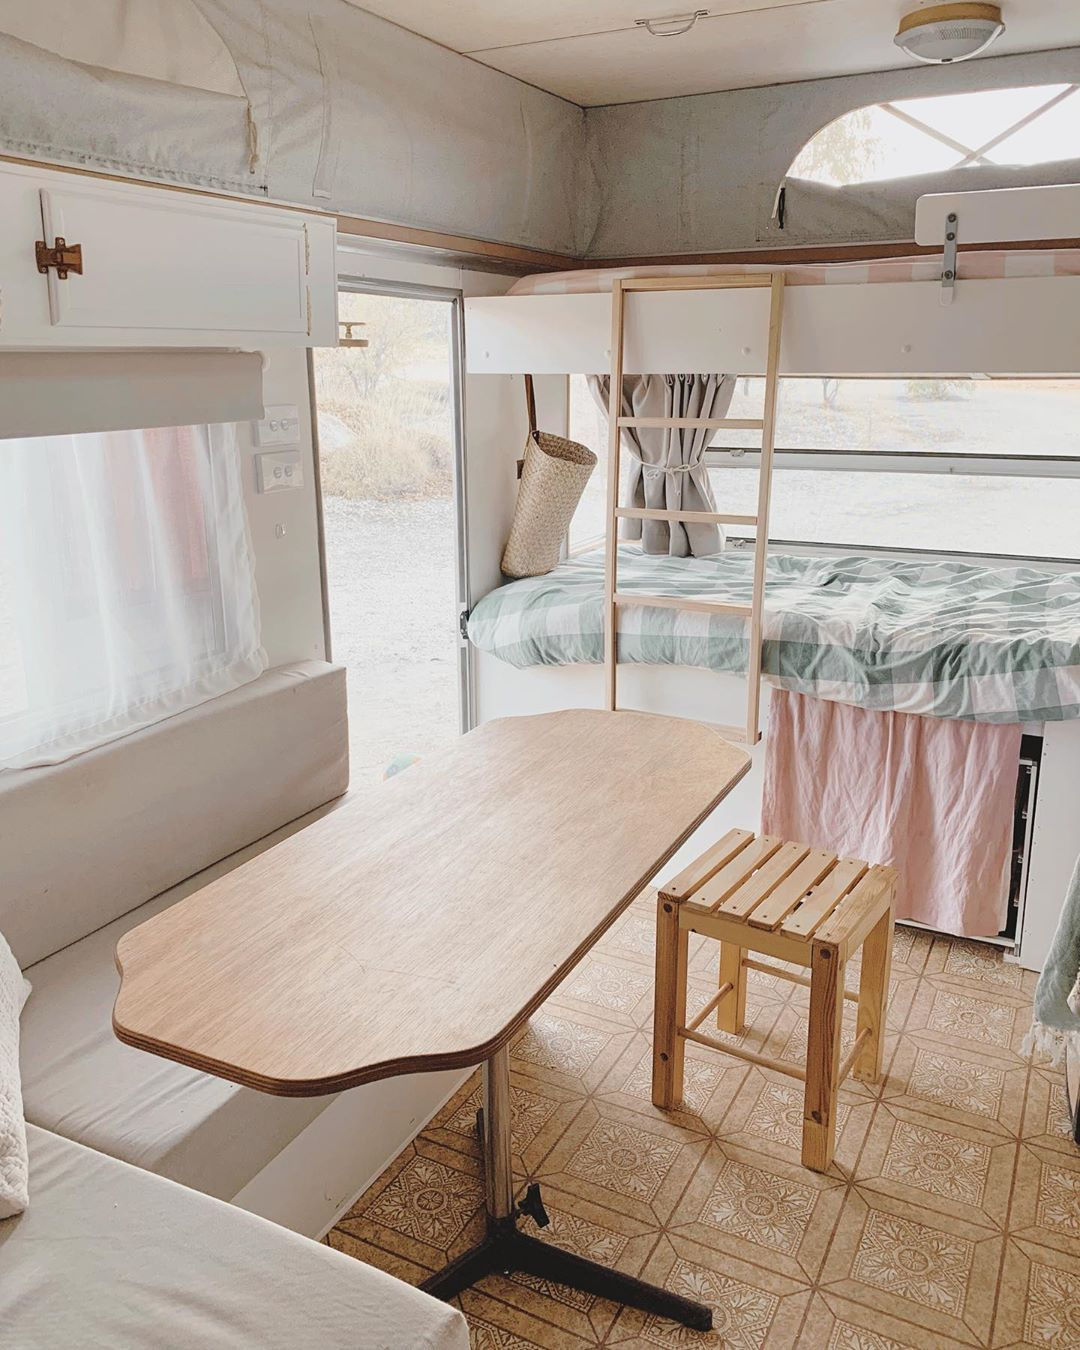 Photo of Caravan Bunk Beds | Caravan Renovation Series